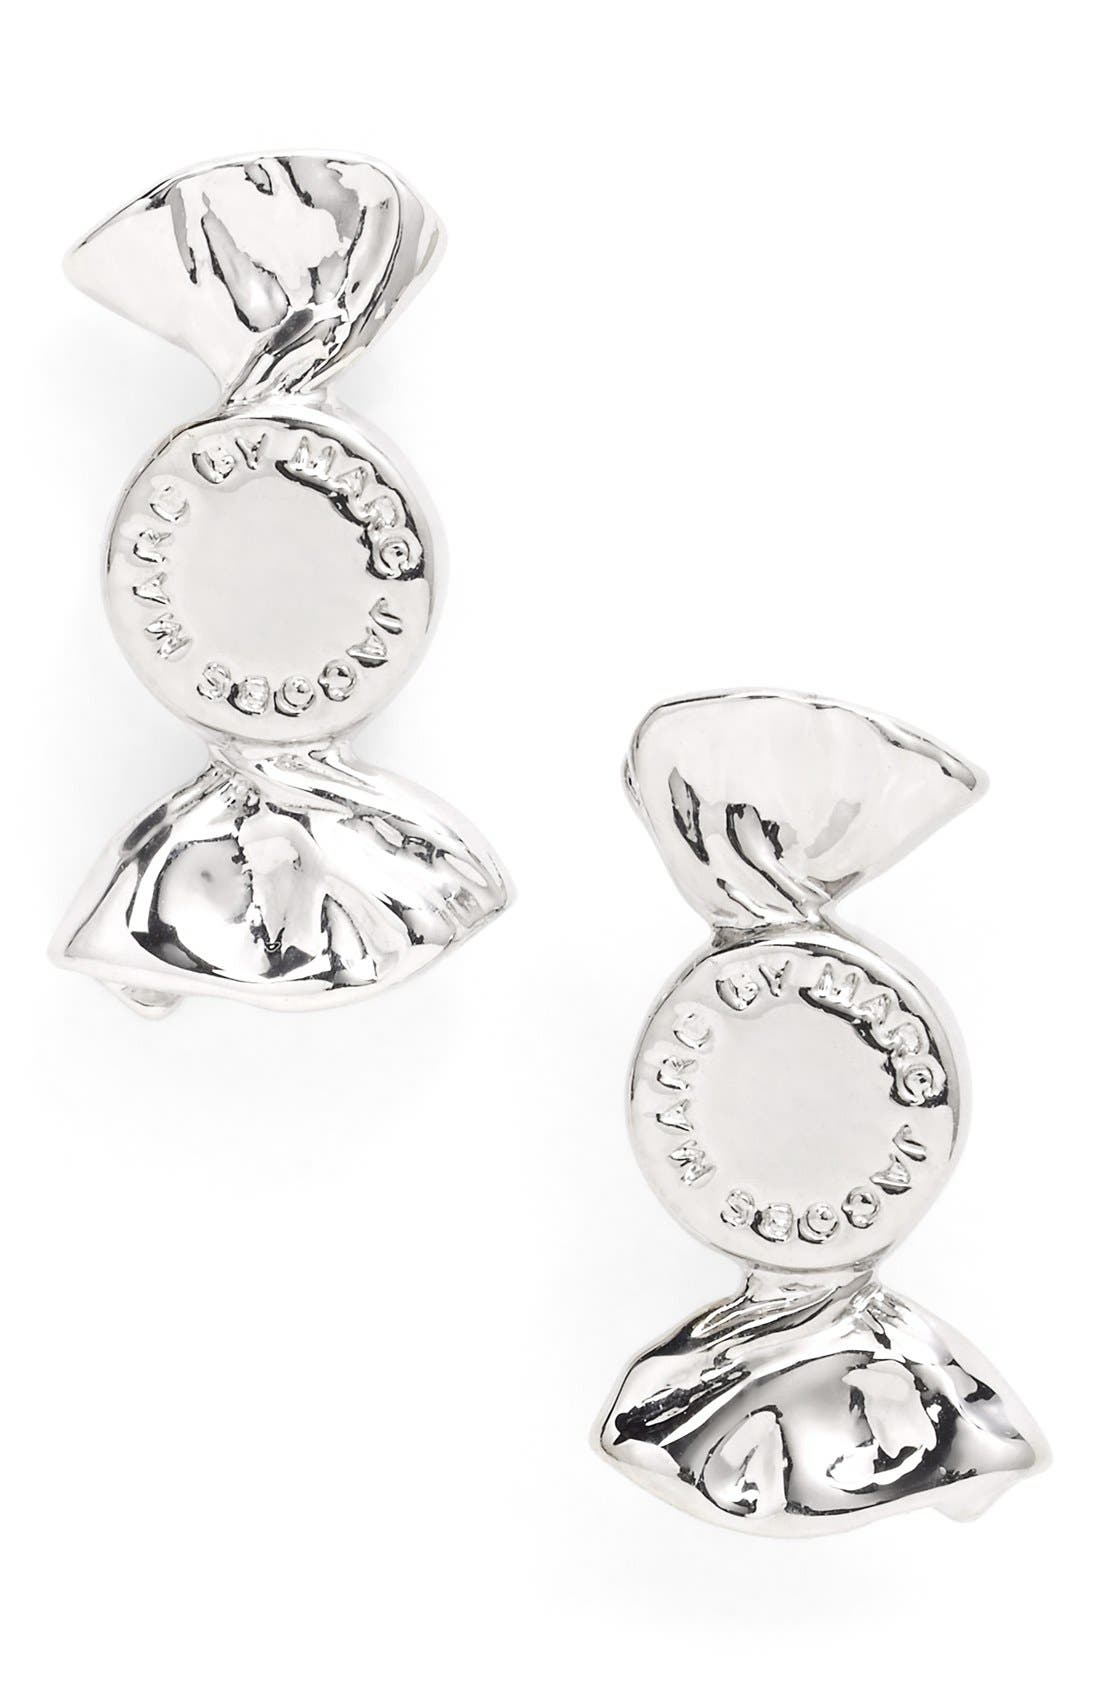 Main Image - MARC BY MARC JACOBS 'Lost & Found' Candy Stud Earrings